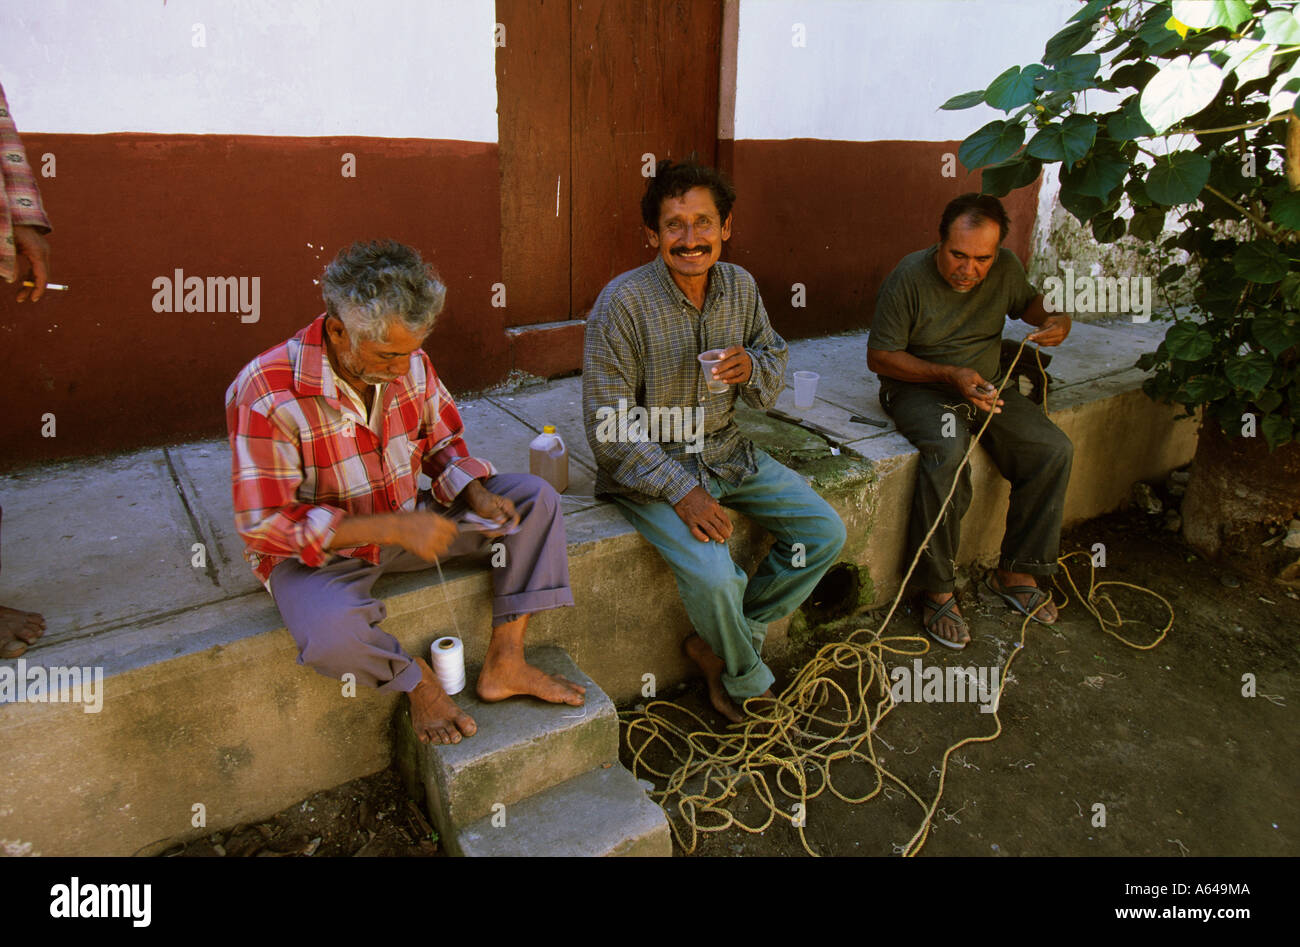 Mexico Nayarit Mexcaltitan fishermen patching nets - Stock Image